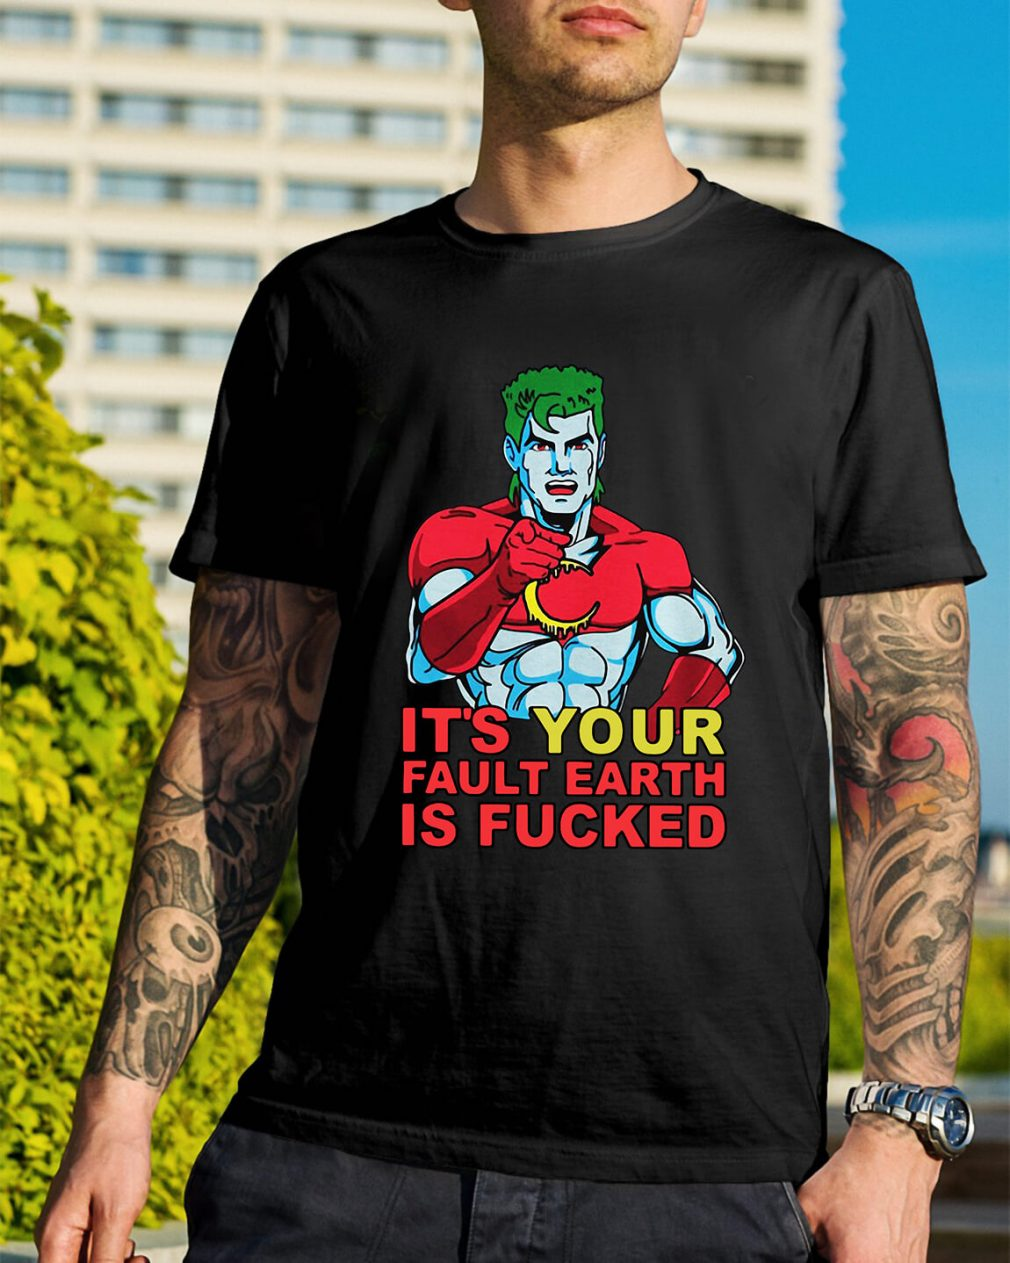 Captain Planet it's your fault earth is fucked shirt